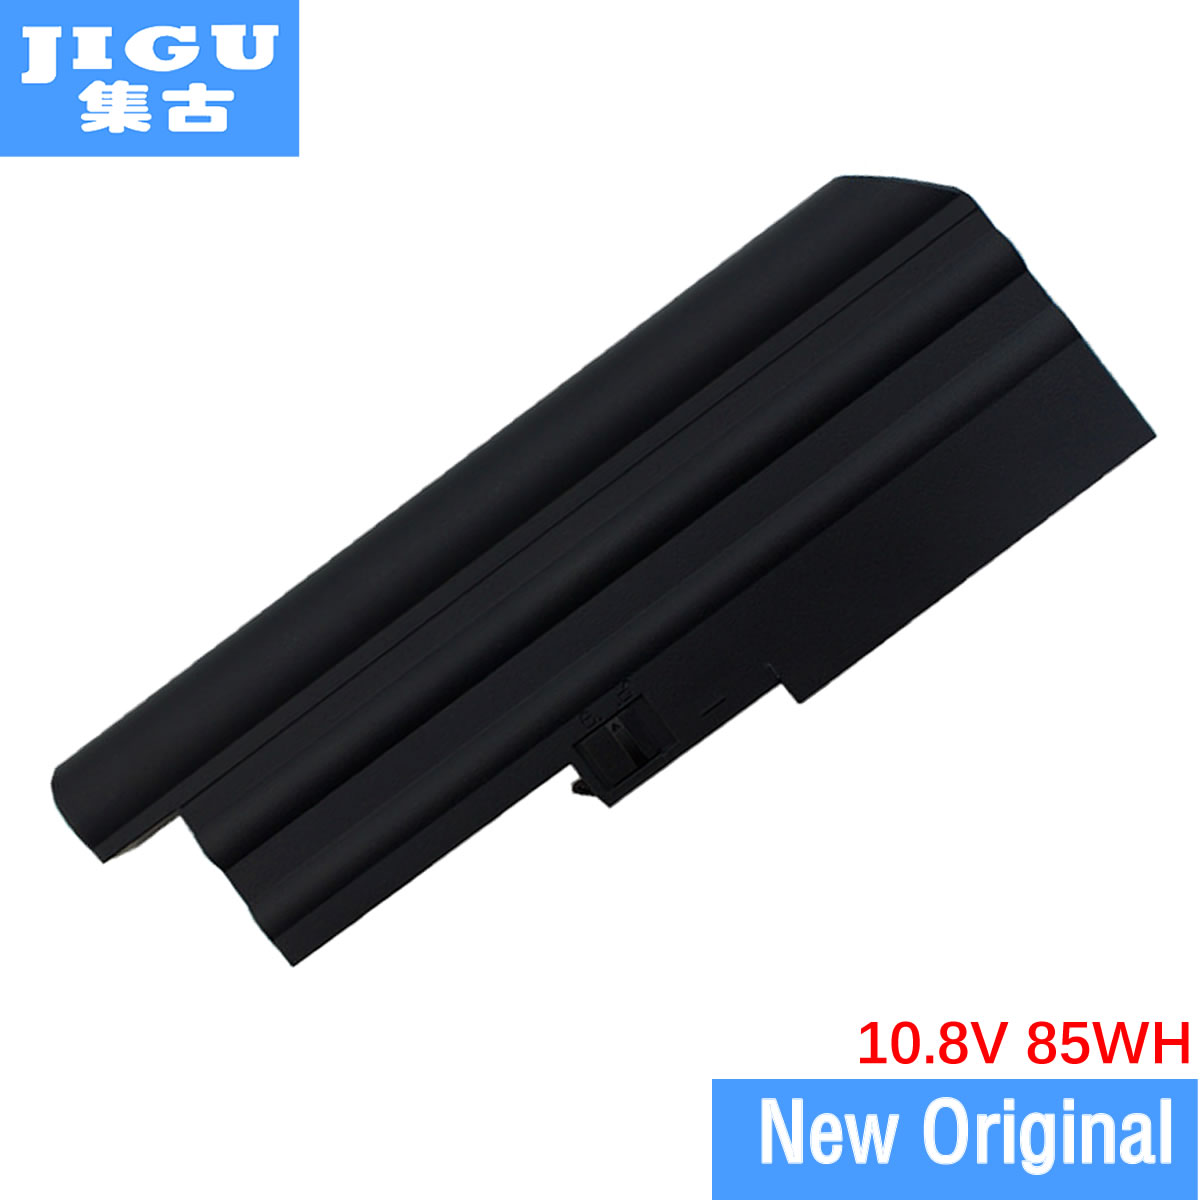 все цены на  JIGU 7800mAh Original Laptop battery for IBM Lenovo R60 R60e R61 R61e R61i T60 T60p T61 T61p R500 T500 W500 SL400 SL500 SL300  онлайн